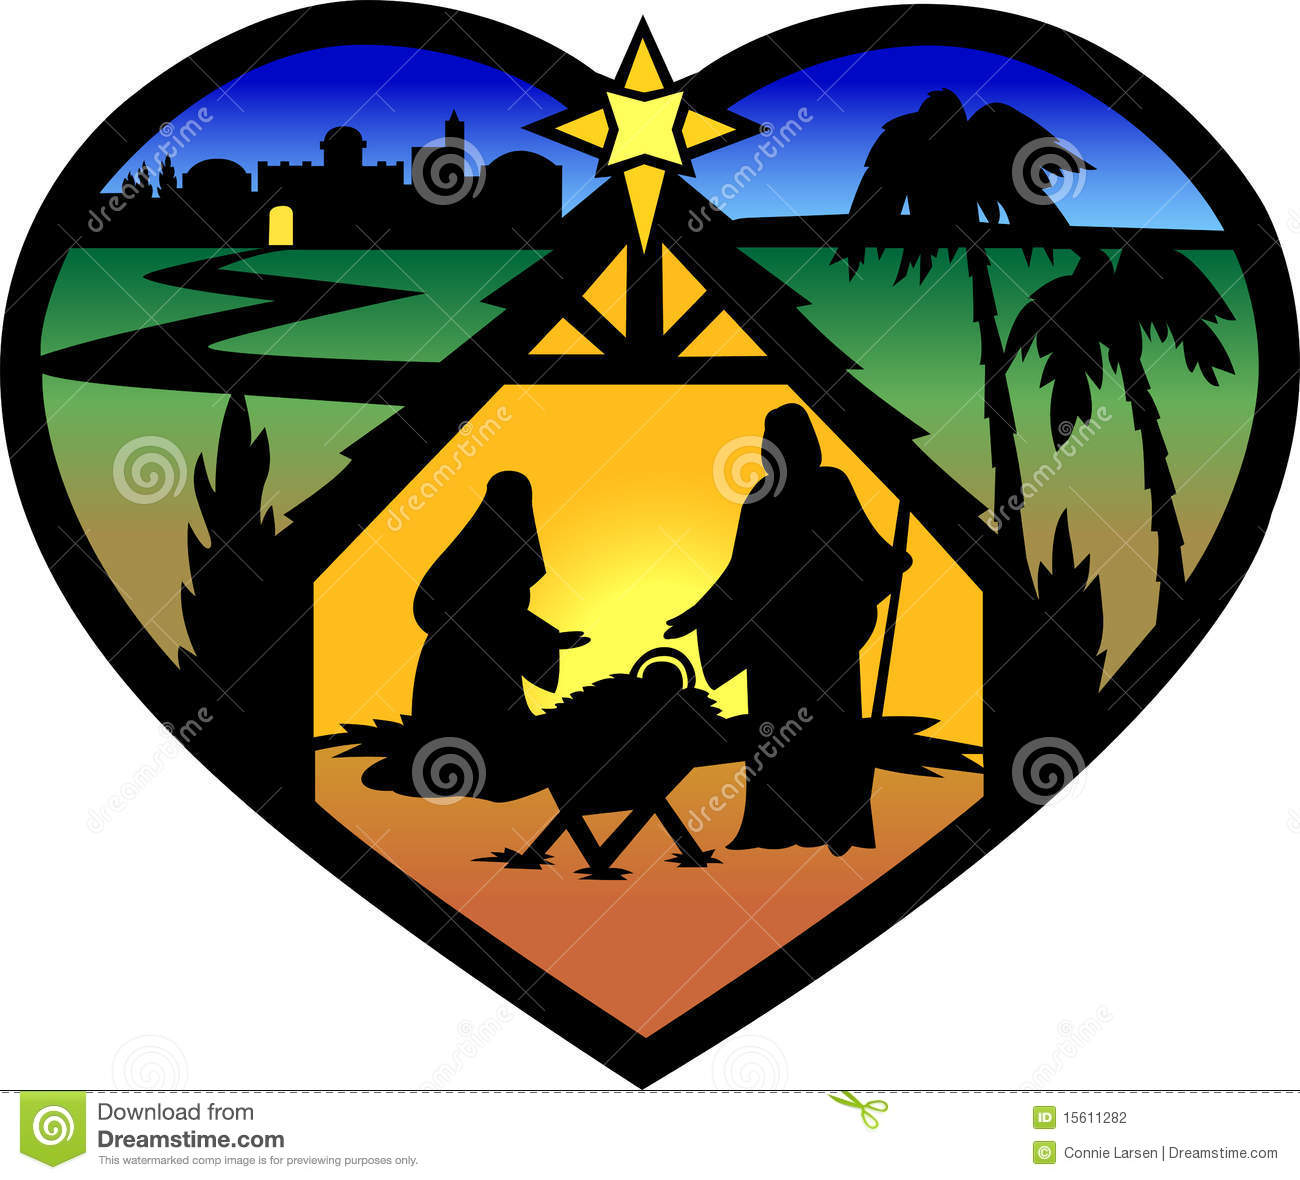 Nativity Heart Silhouette/eps Stock Photography - Image: 15611282